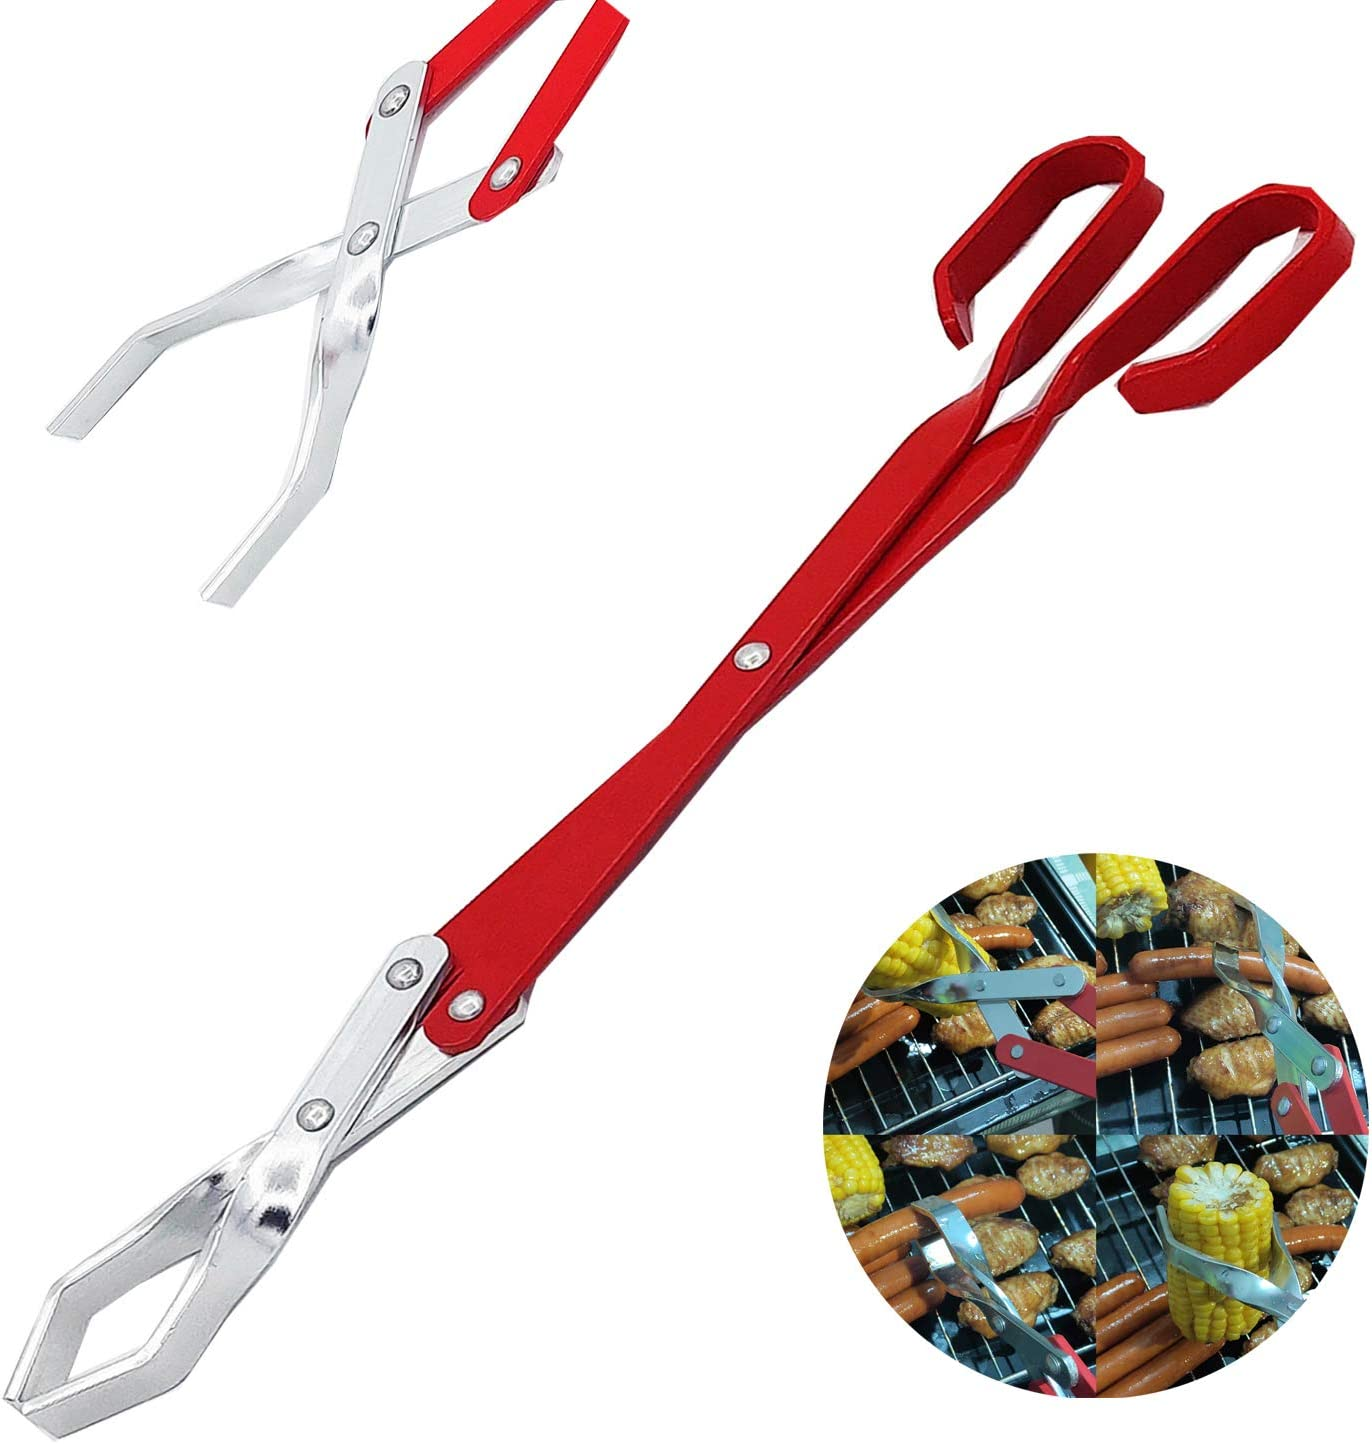 Grill Tongs-Heavy Duty BBQ Grilling Tongs for Cooking & Serving Food -Long Aluminum alloy Tongs for Kitchen & Barbecue-16.7 inch-Red